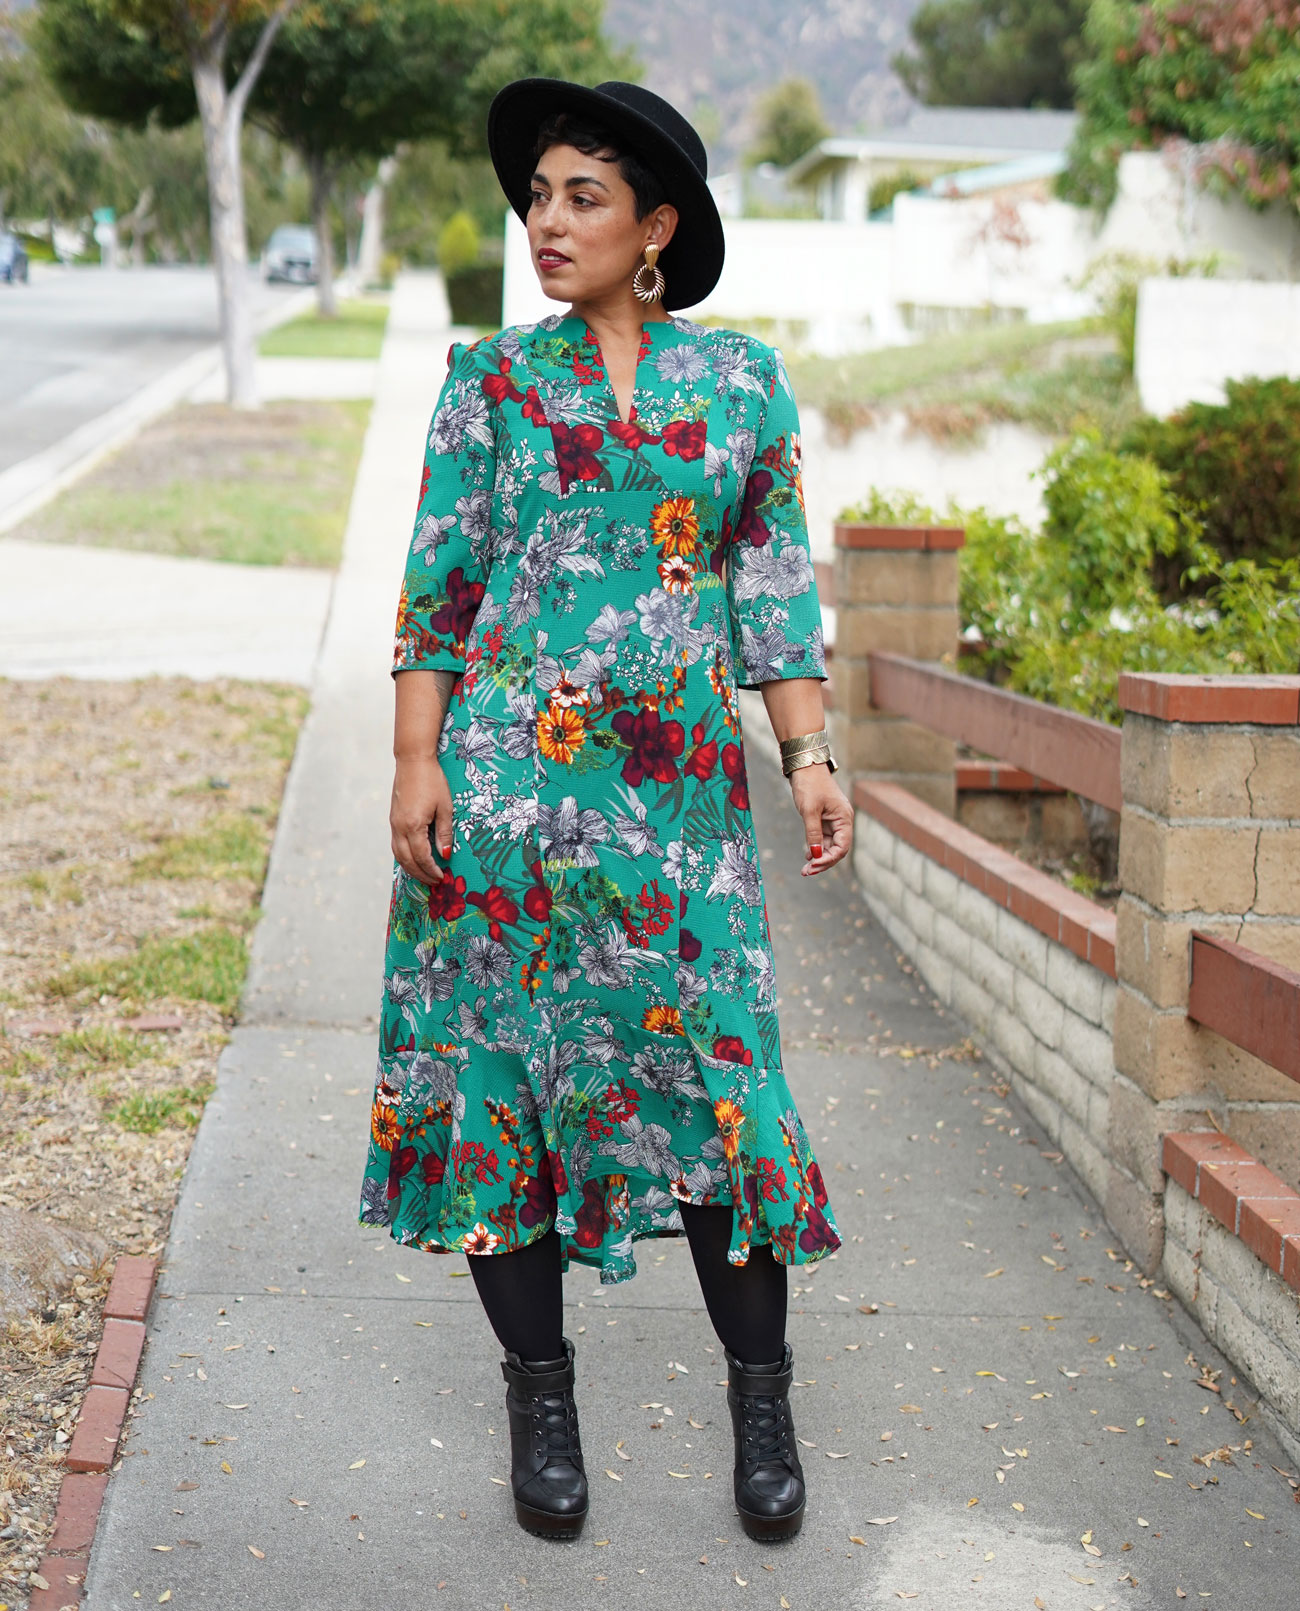 Diy Green Floral Maxi Dress Using Mccall 7804 Mimi G Style